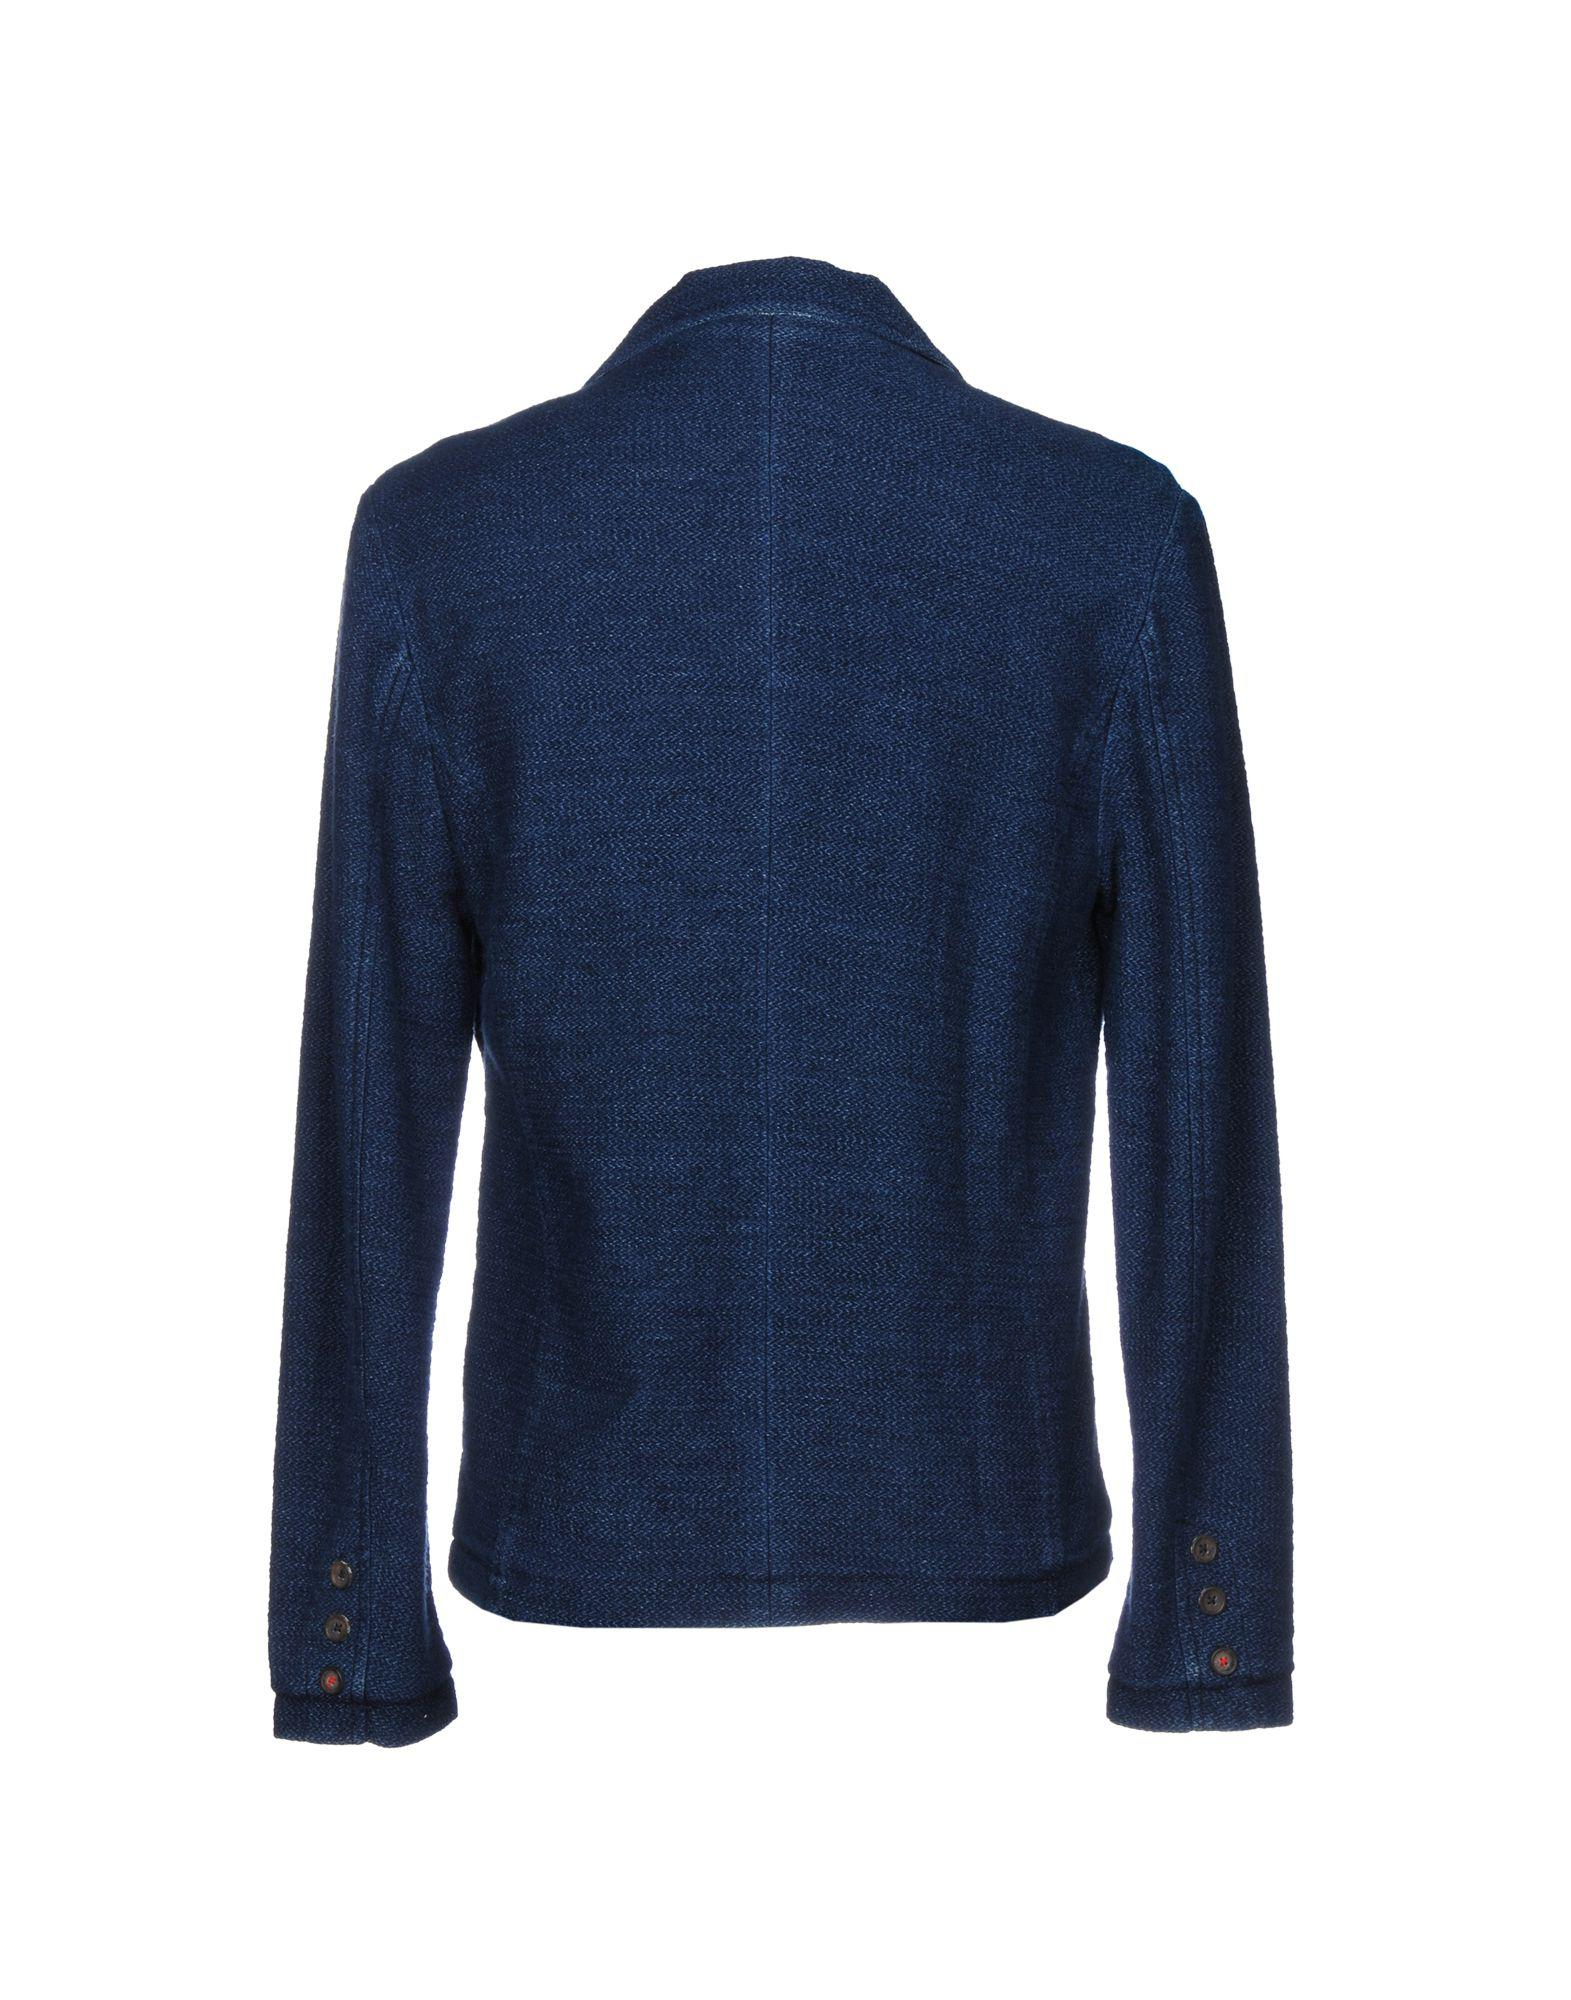 Pepe Jeans Cotton Blazer in Blue for Men